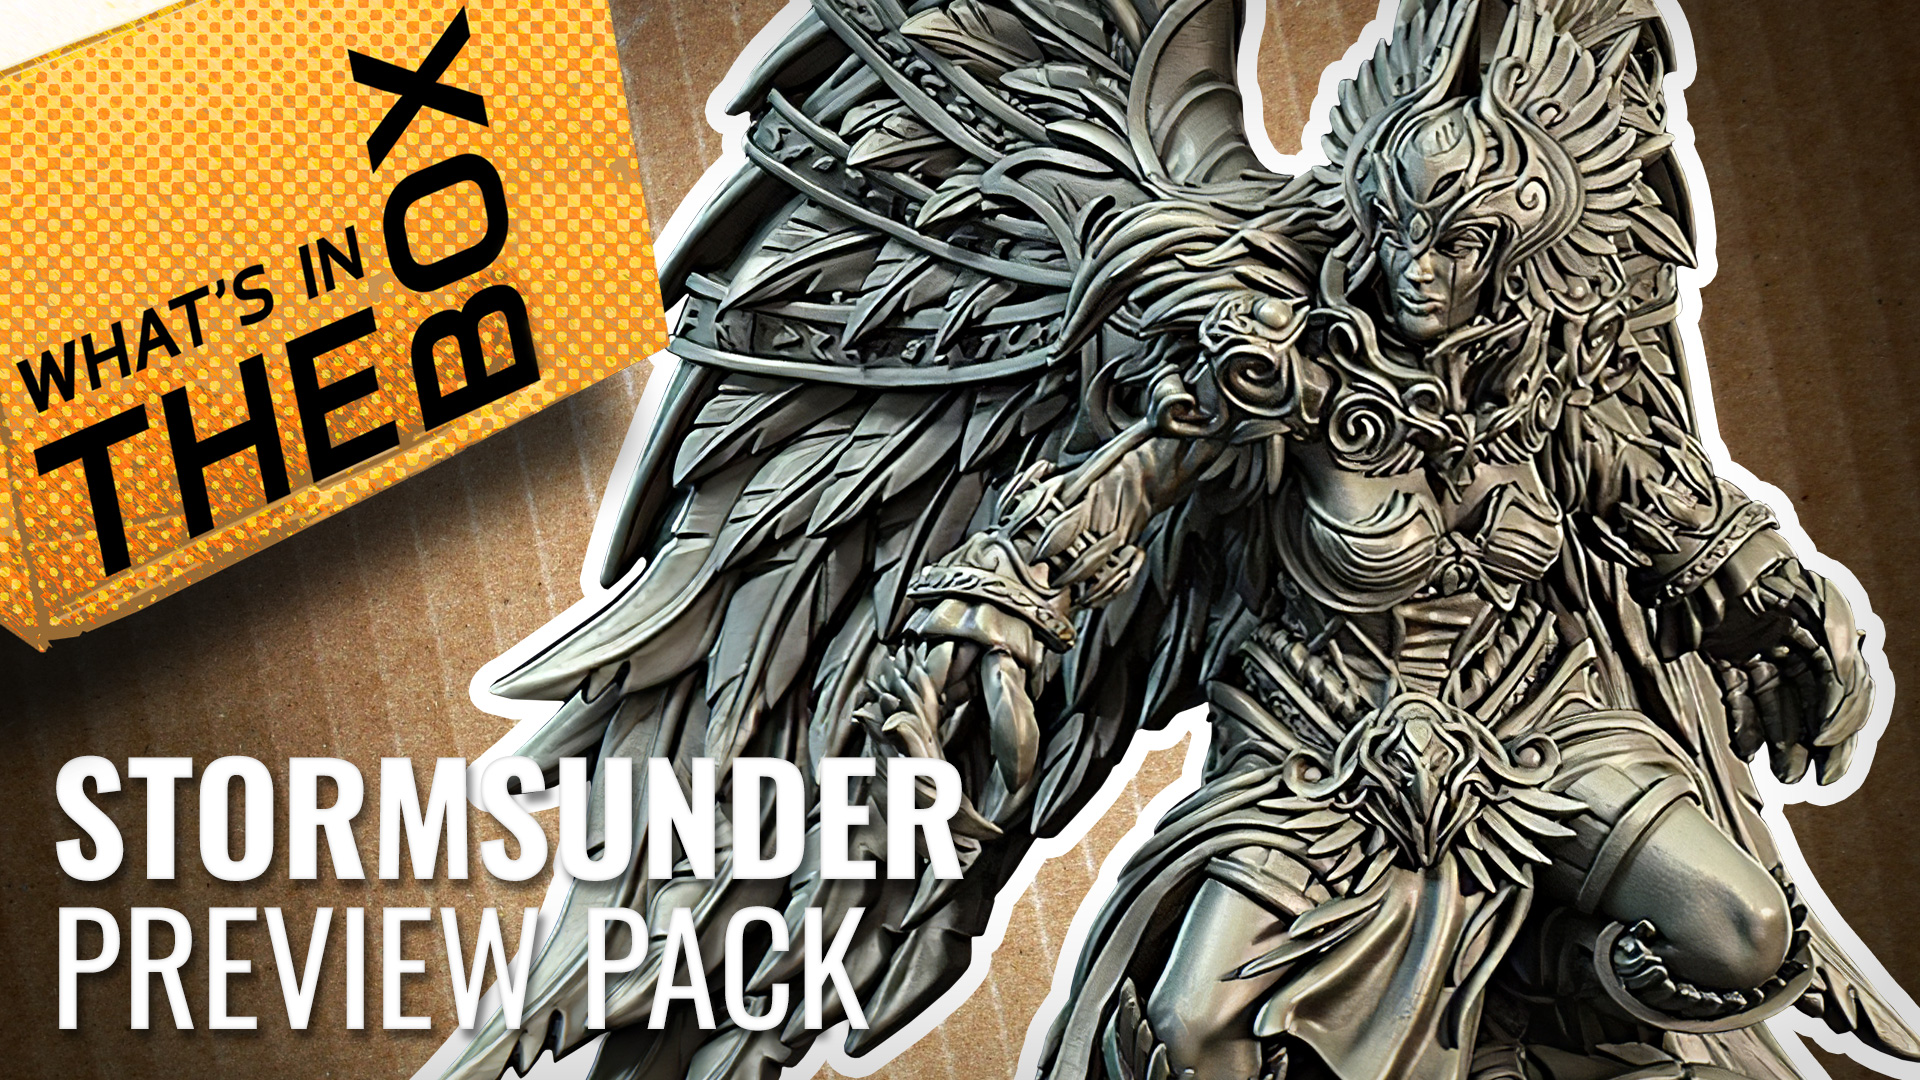 Unboxing---Stormsunder-Preview-Pack-coverimage